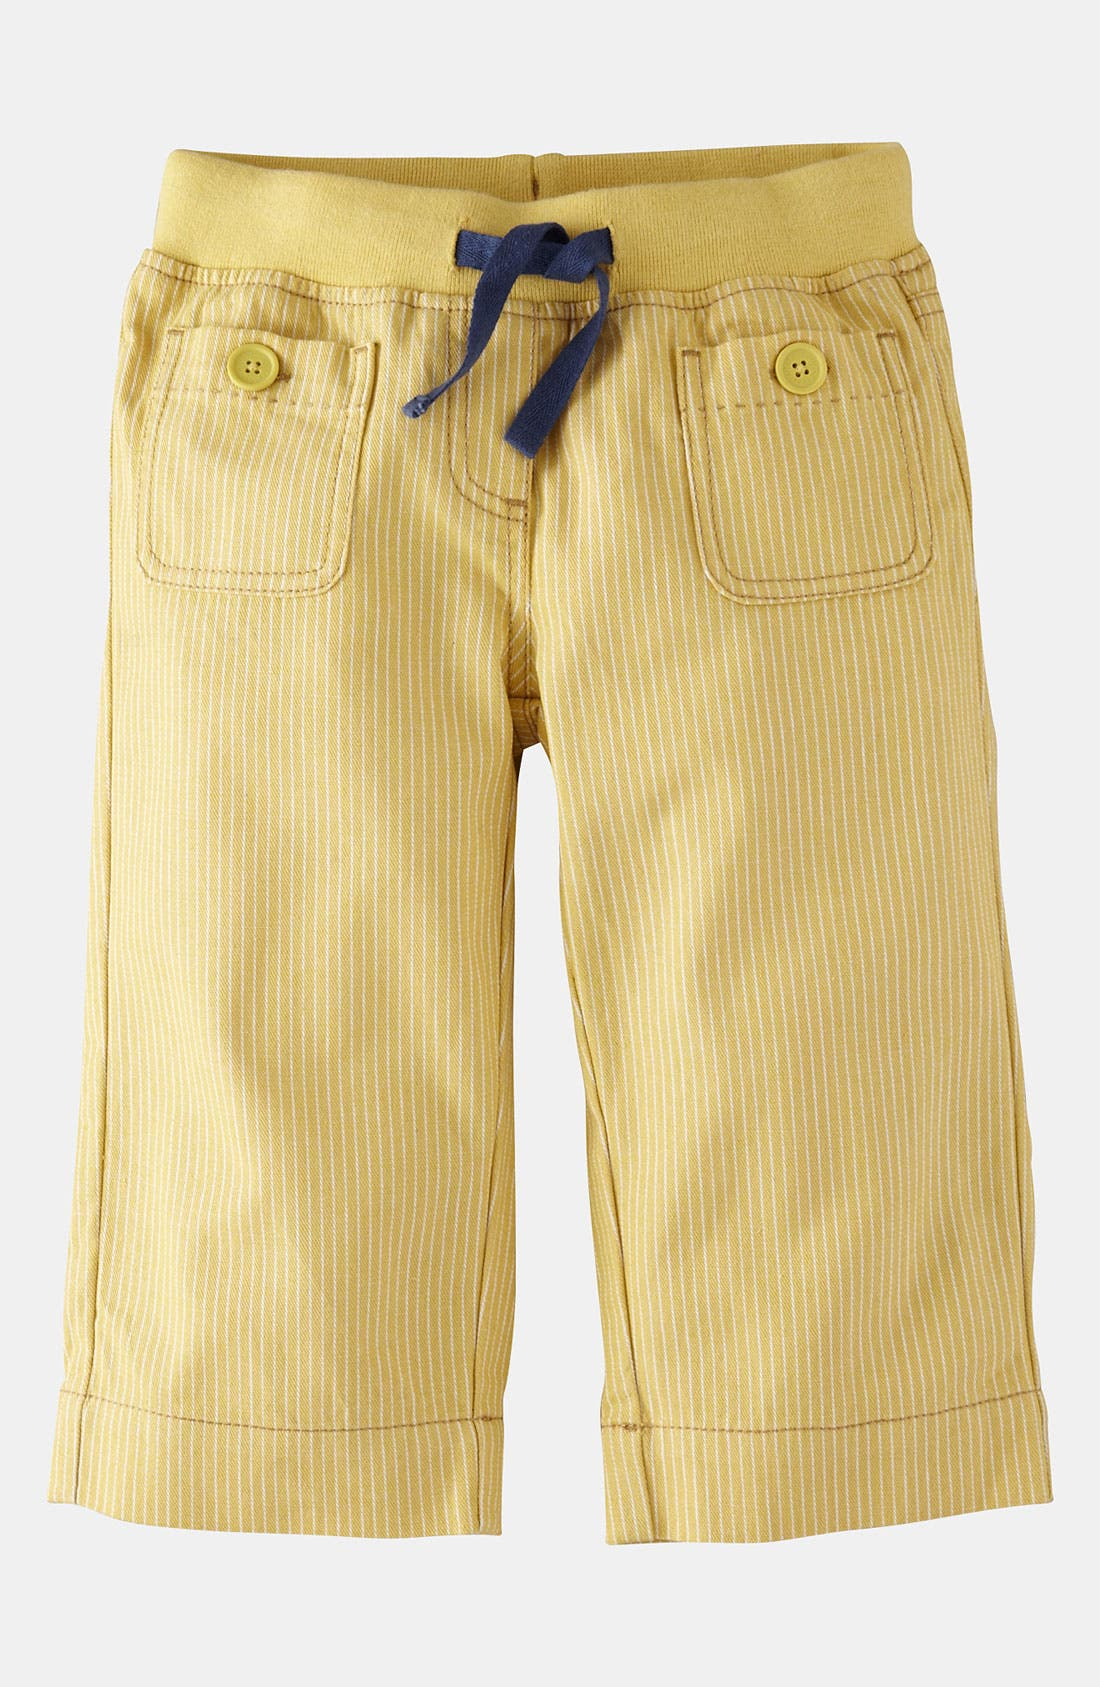 Alternate Image 1 Selected - Mini Boden 'Sailor' Capri Pants (Little Girls & Big Girls)